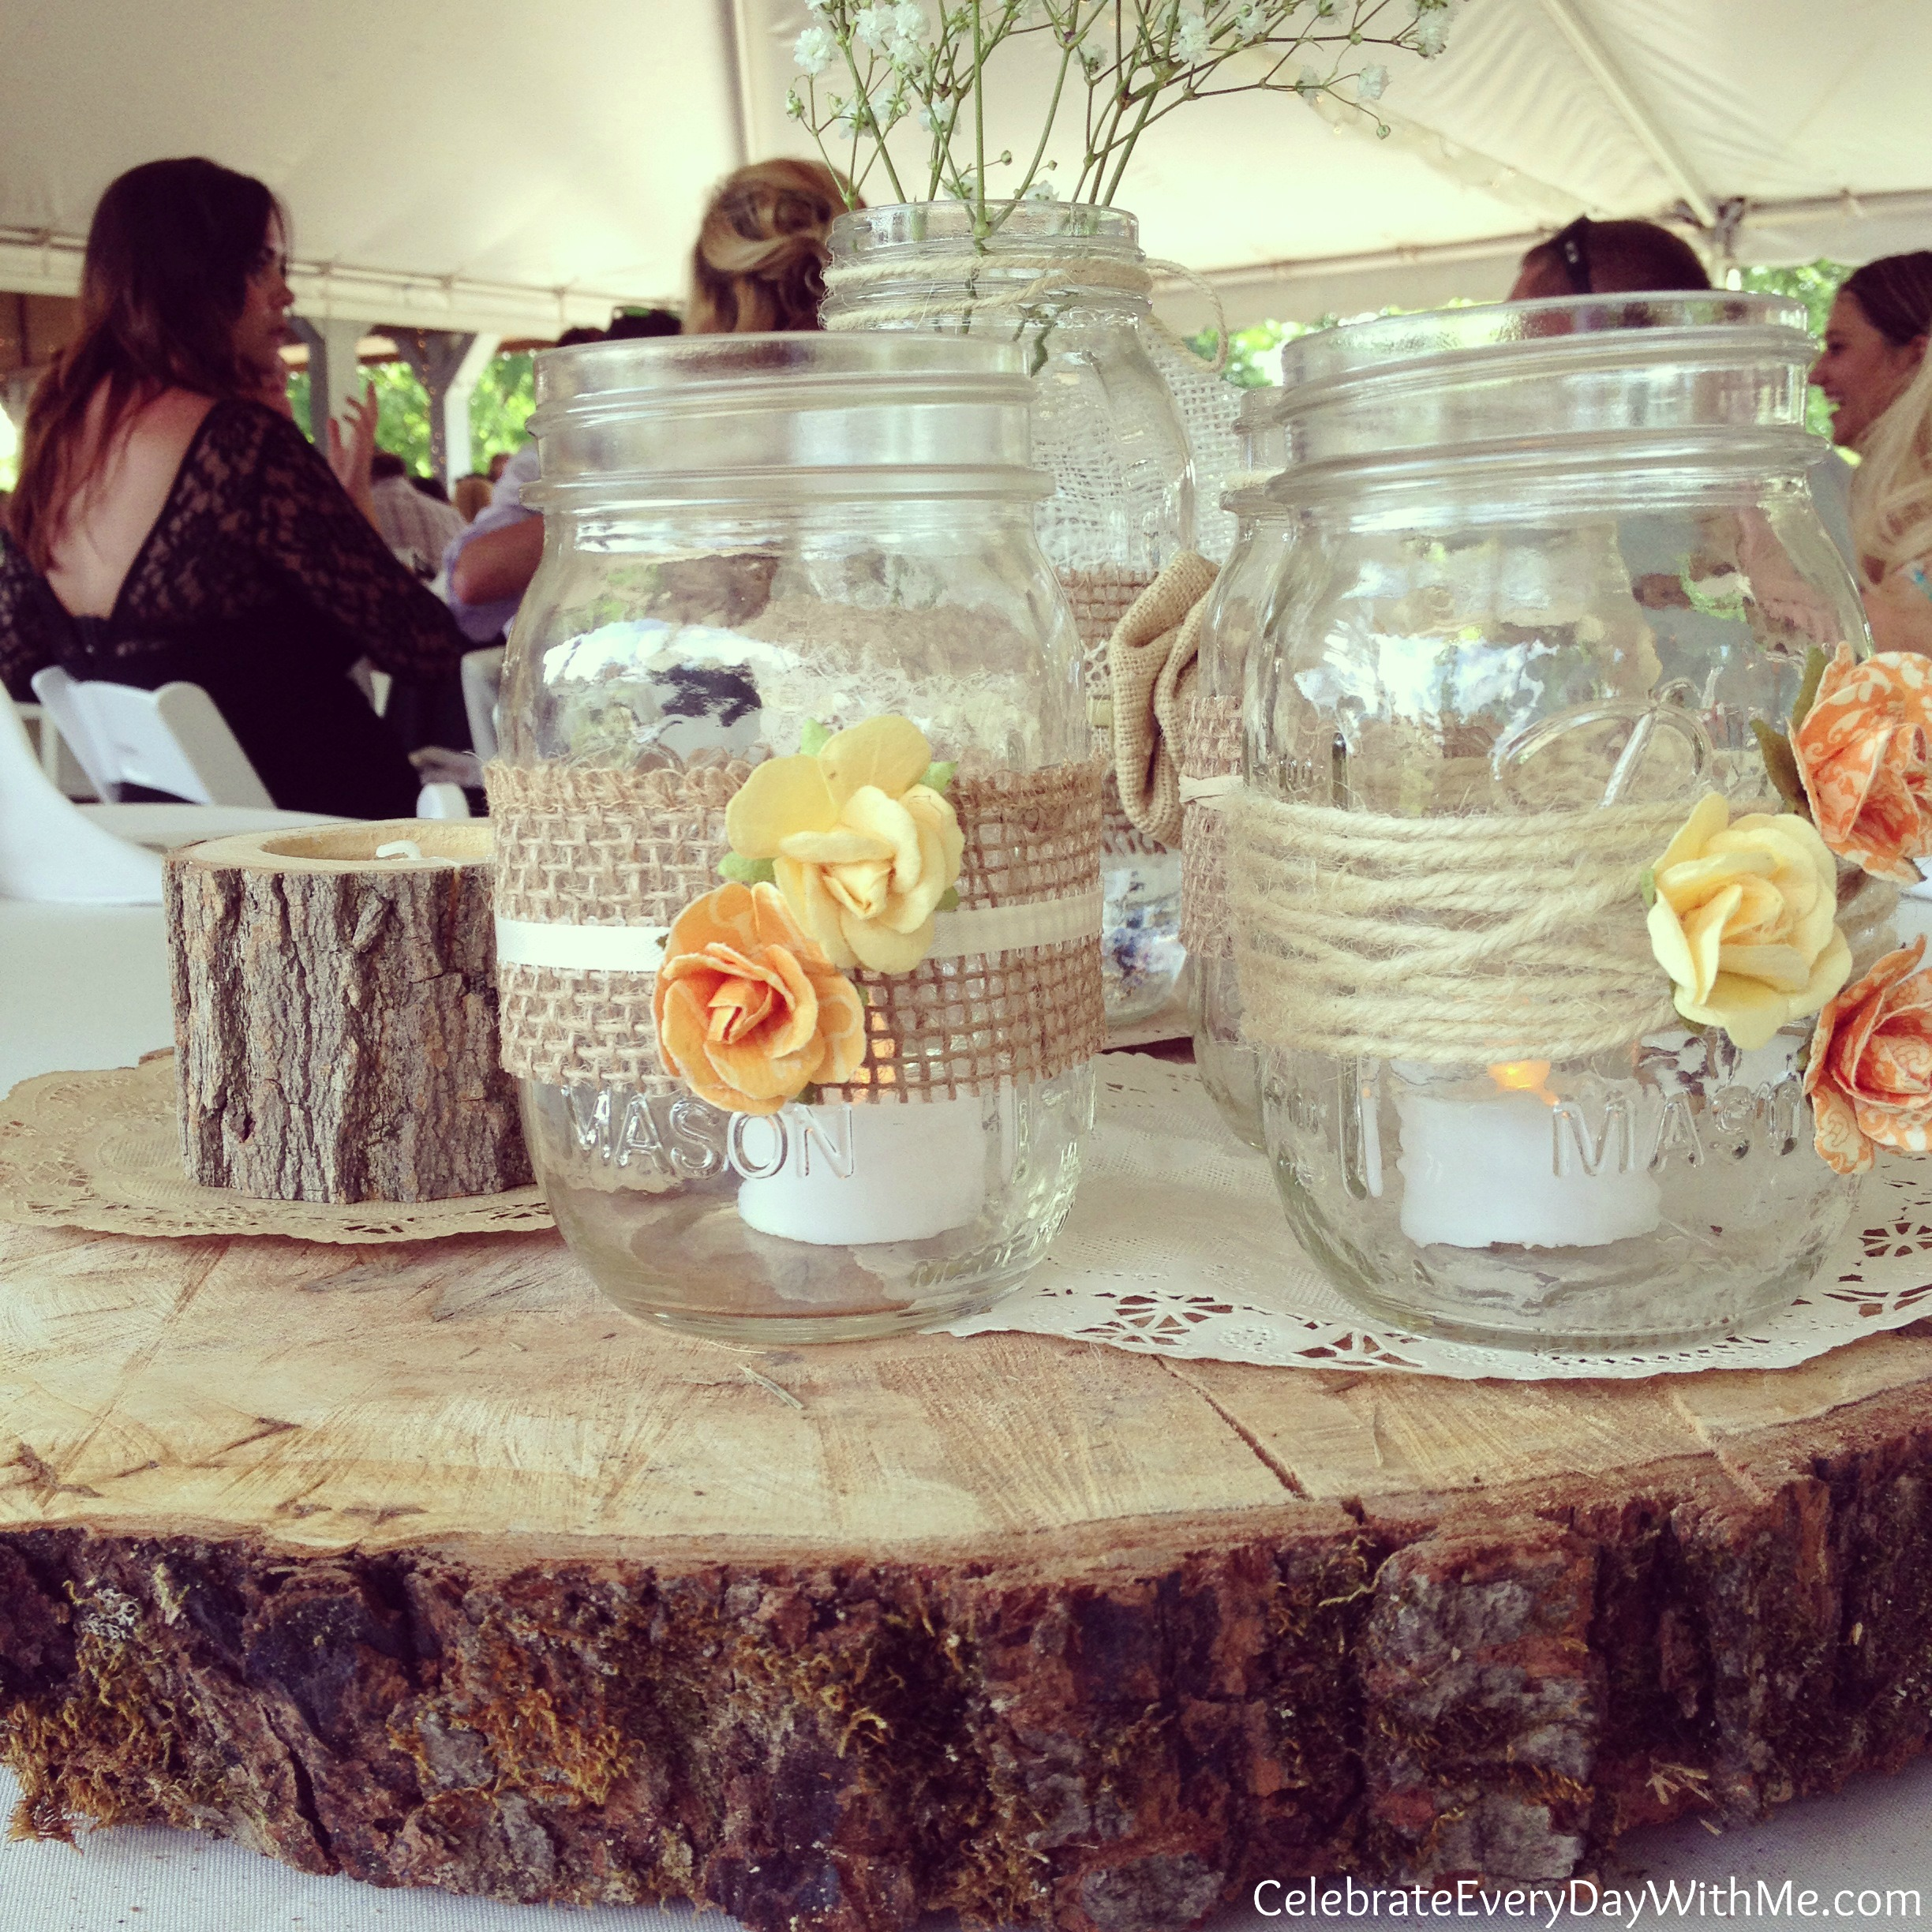 Country Wedding Ideas | Celebrate Every Day With Me - photo#22